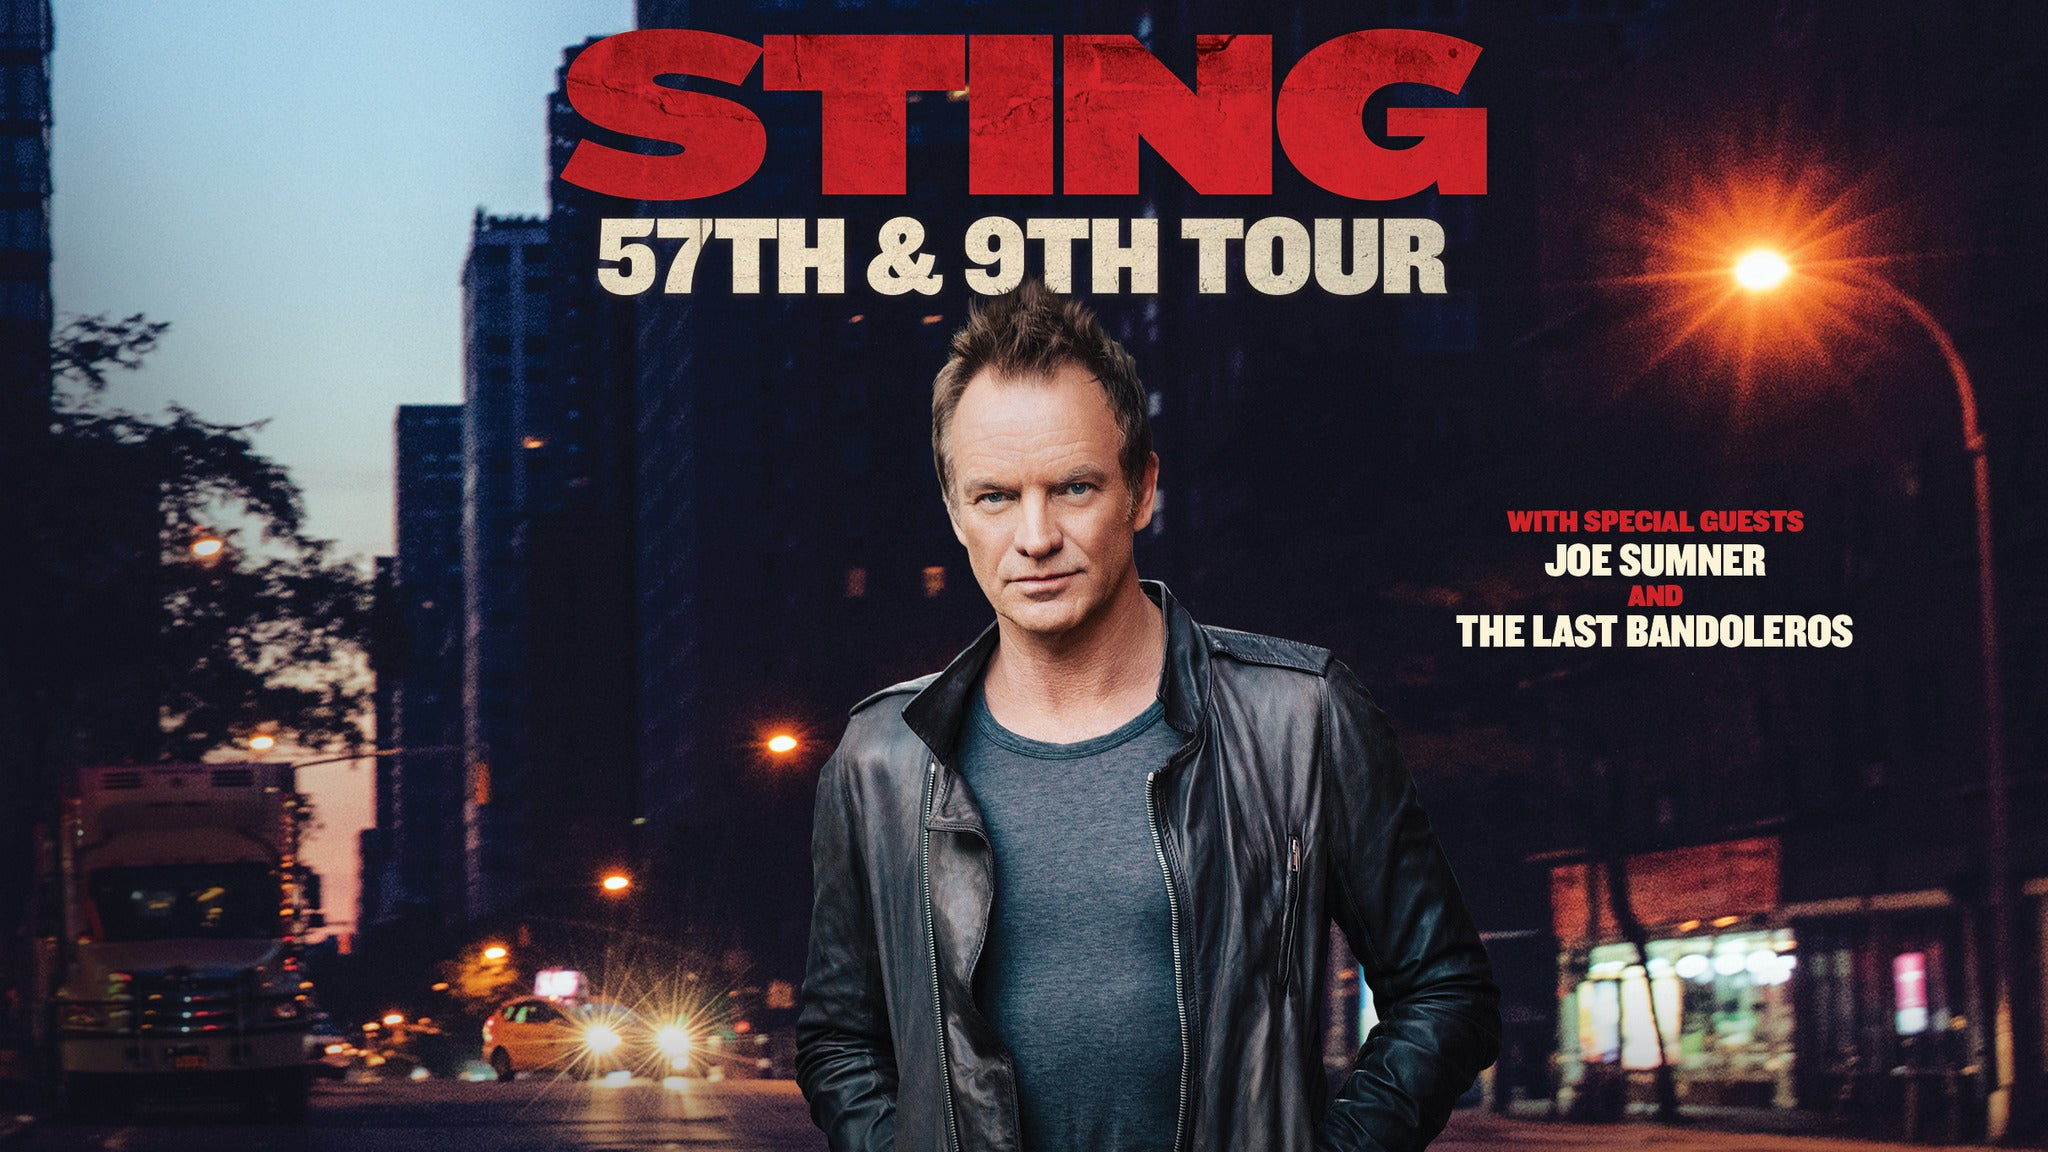 Sting 57th & 9th Tour at Fillmore Auditorium (Denver)